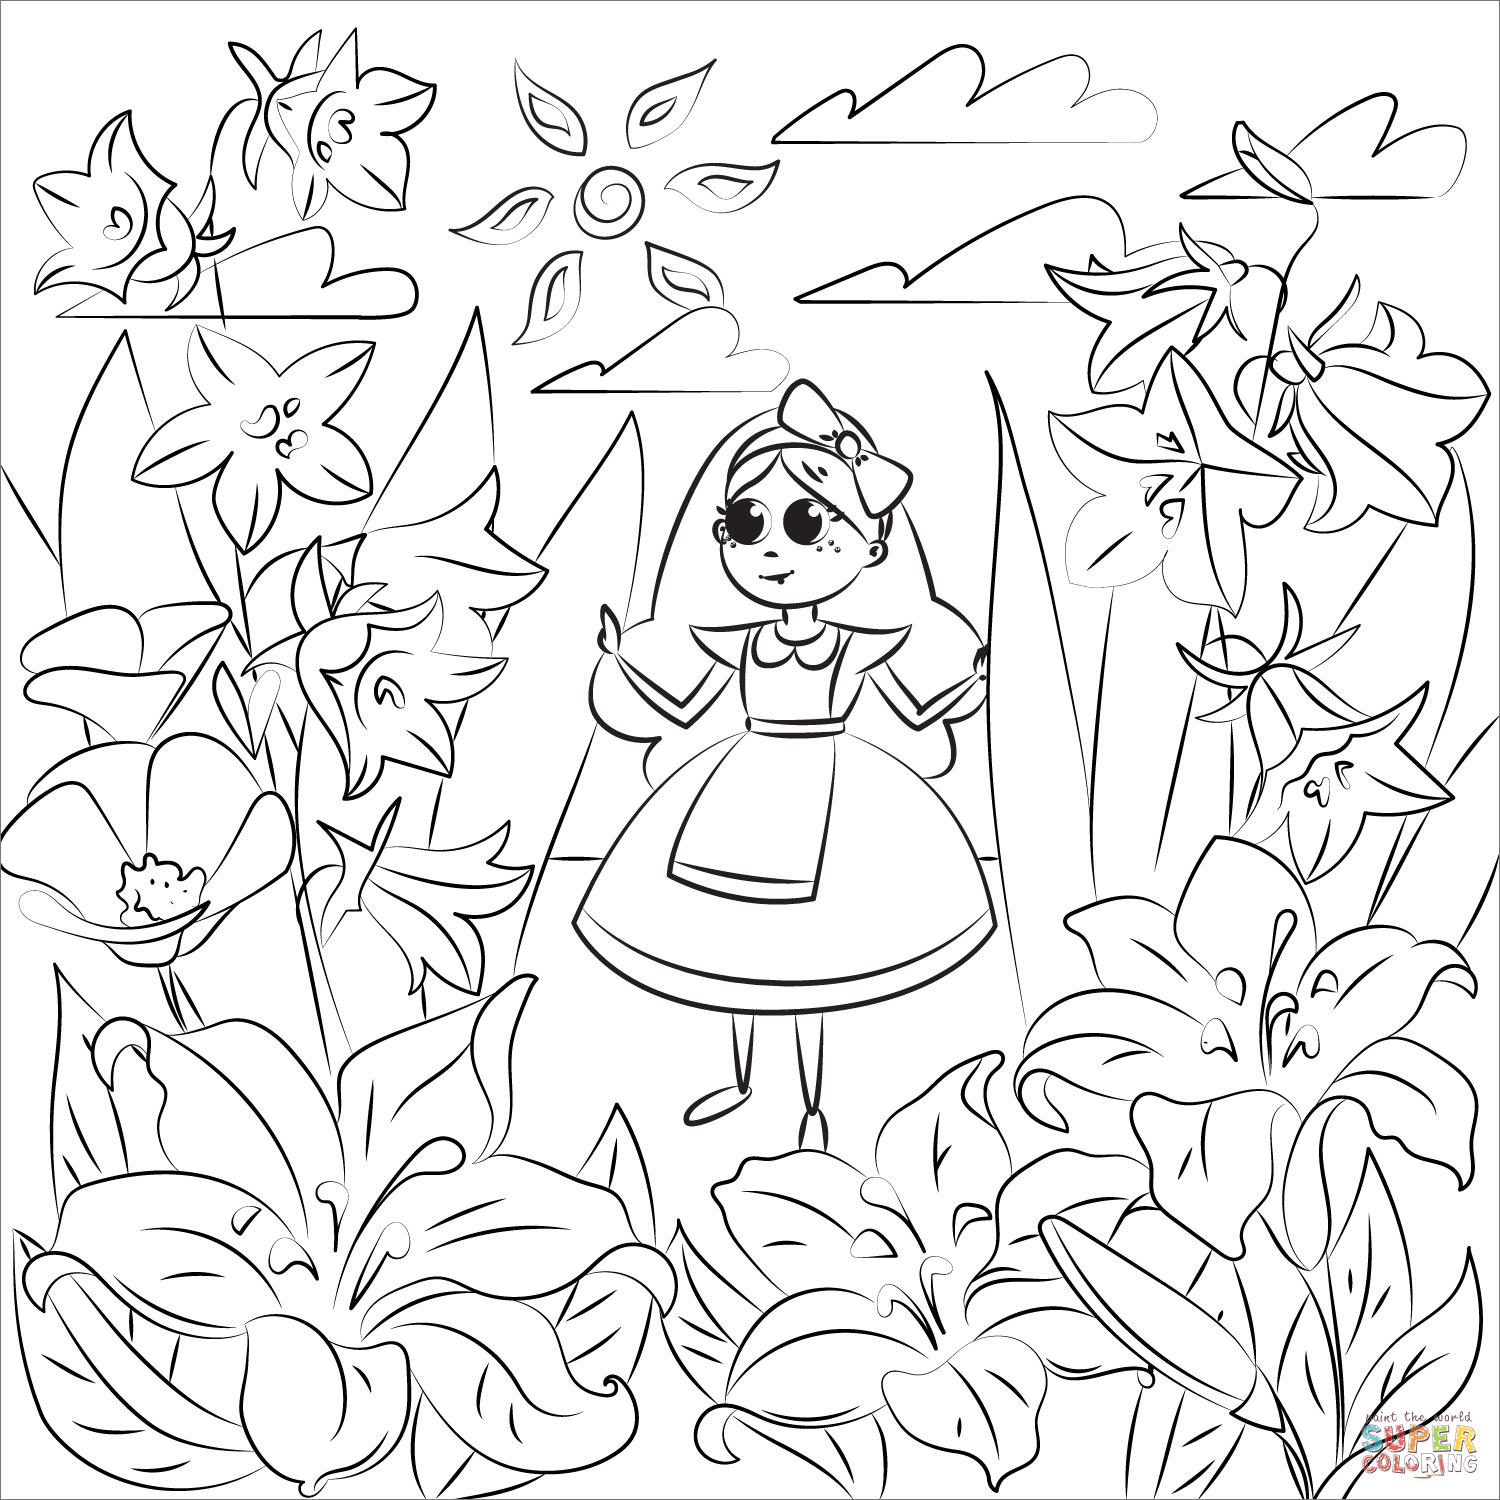 colouring pages alice in wonderland alice in wonderland coloring page free printable wonderland pages colouring in alice